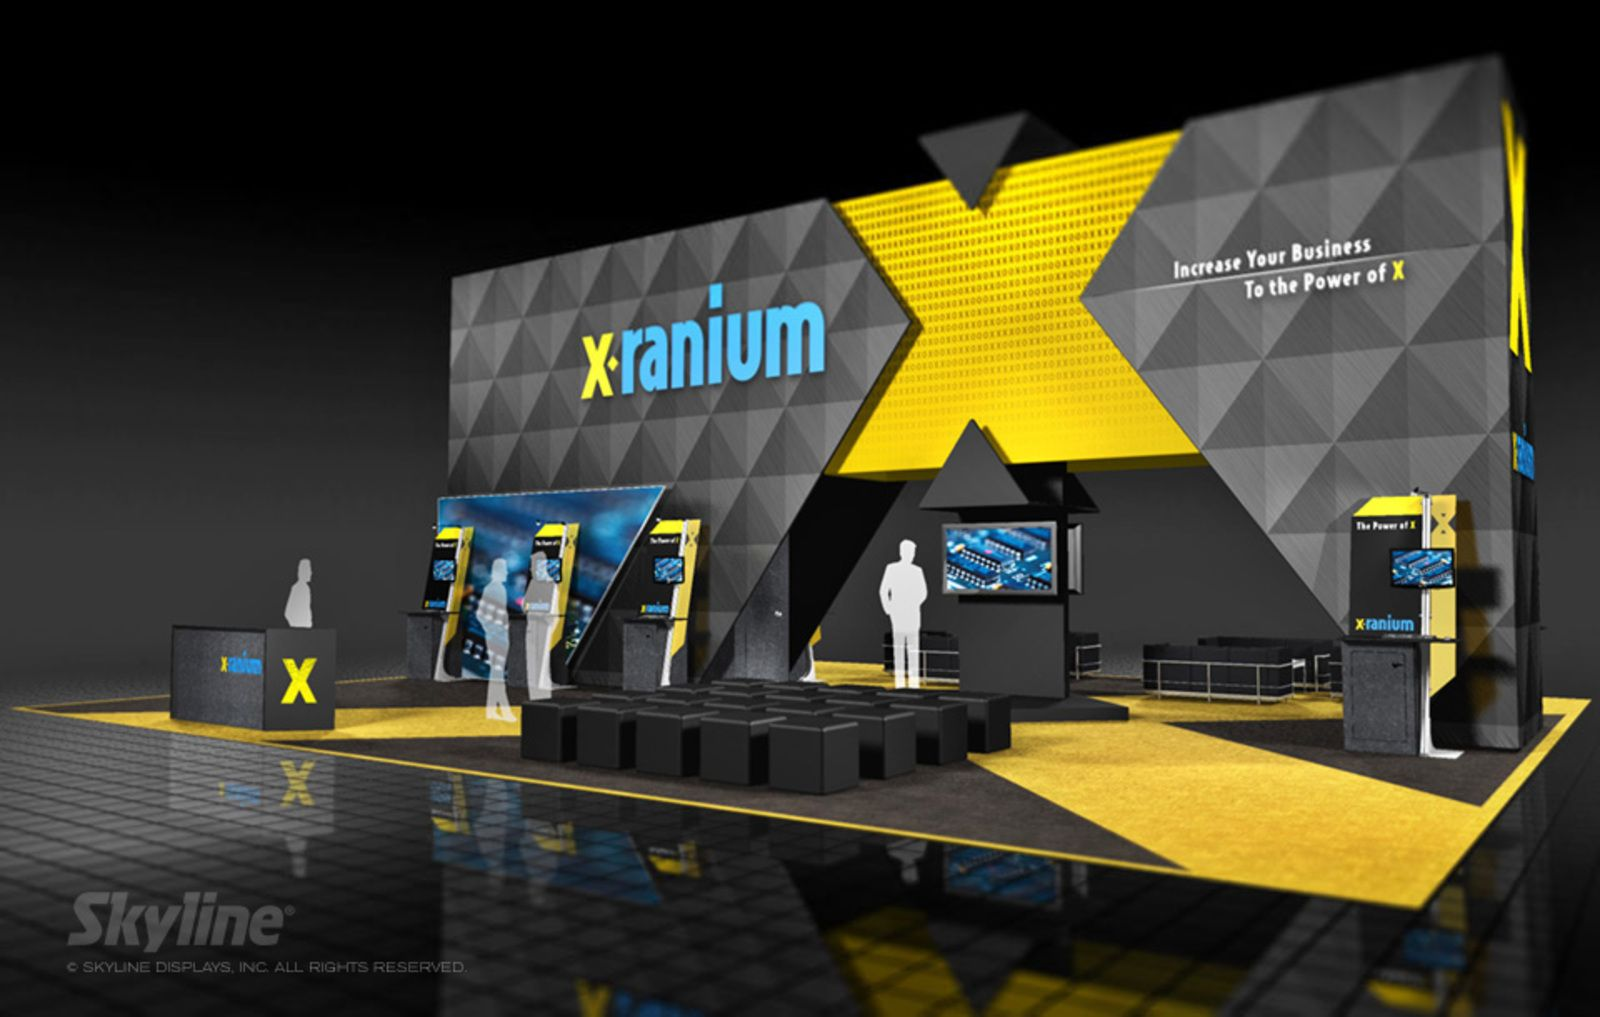 Exhibit Design Ideas & Inspiration - Trade Show Displays ...